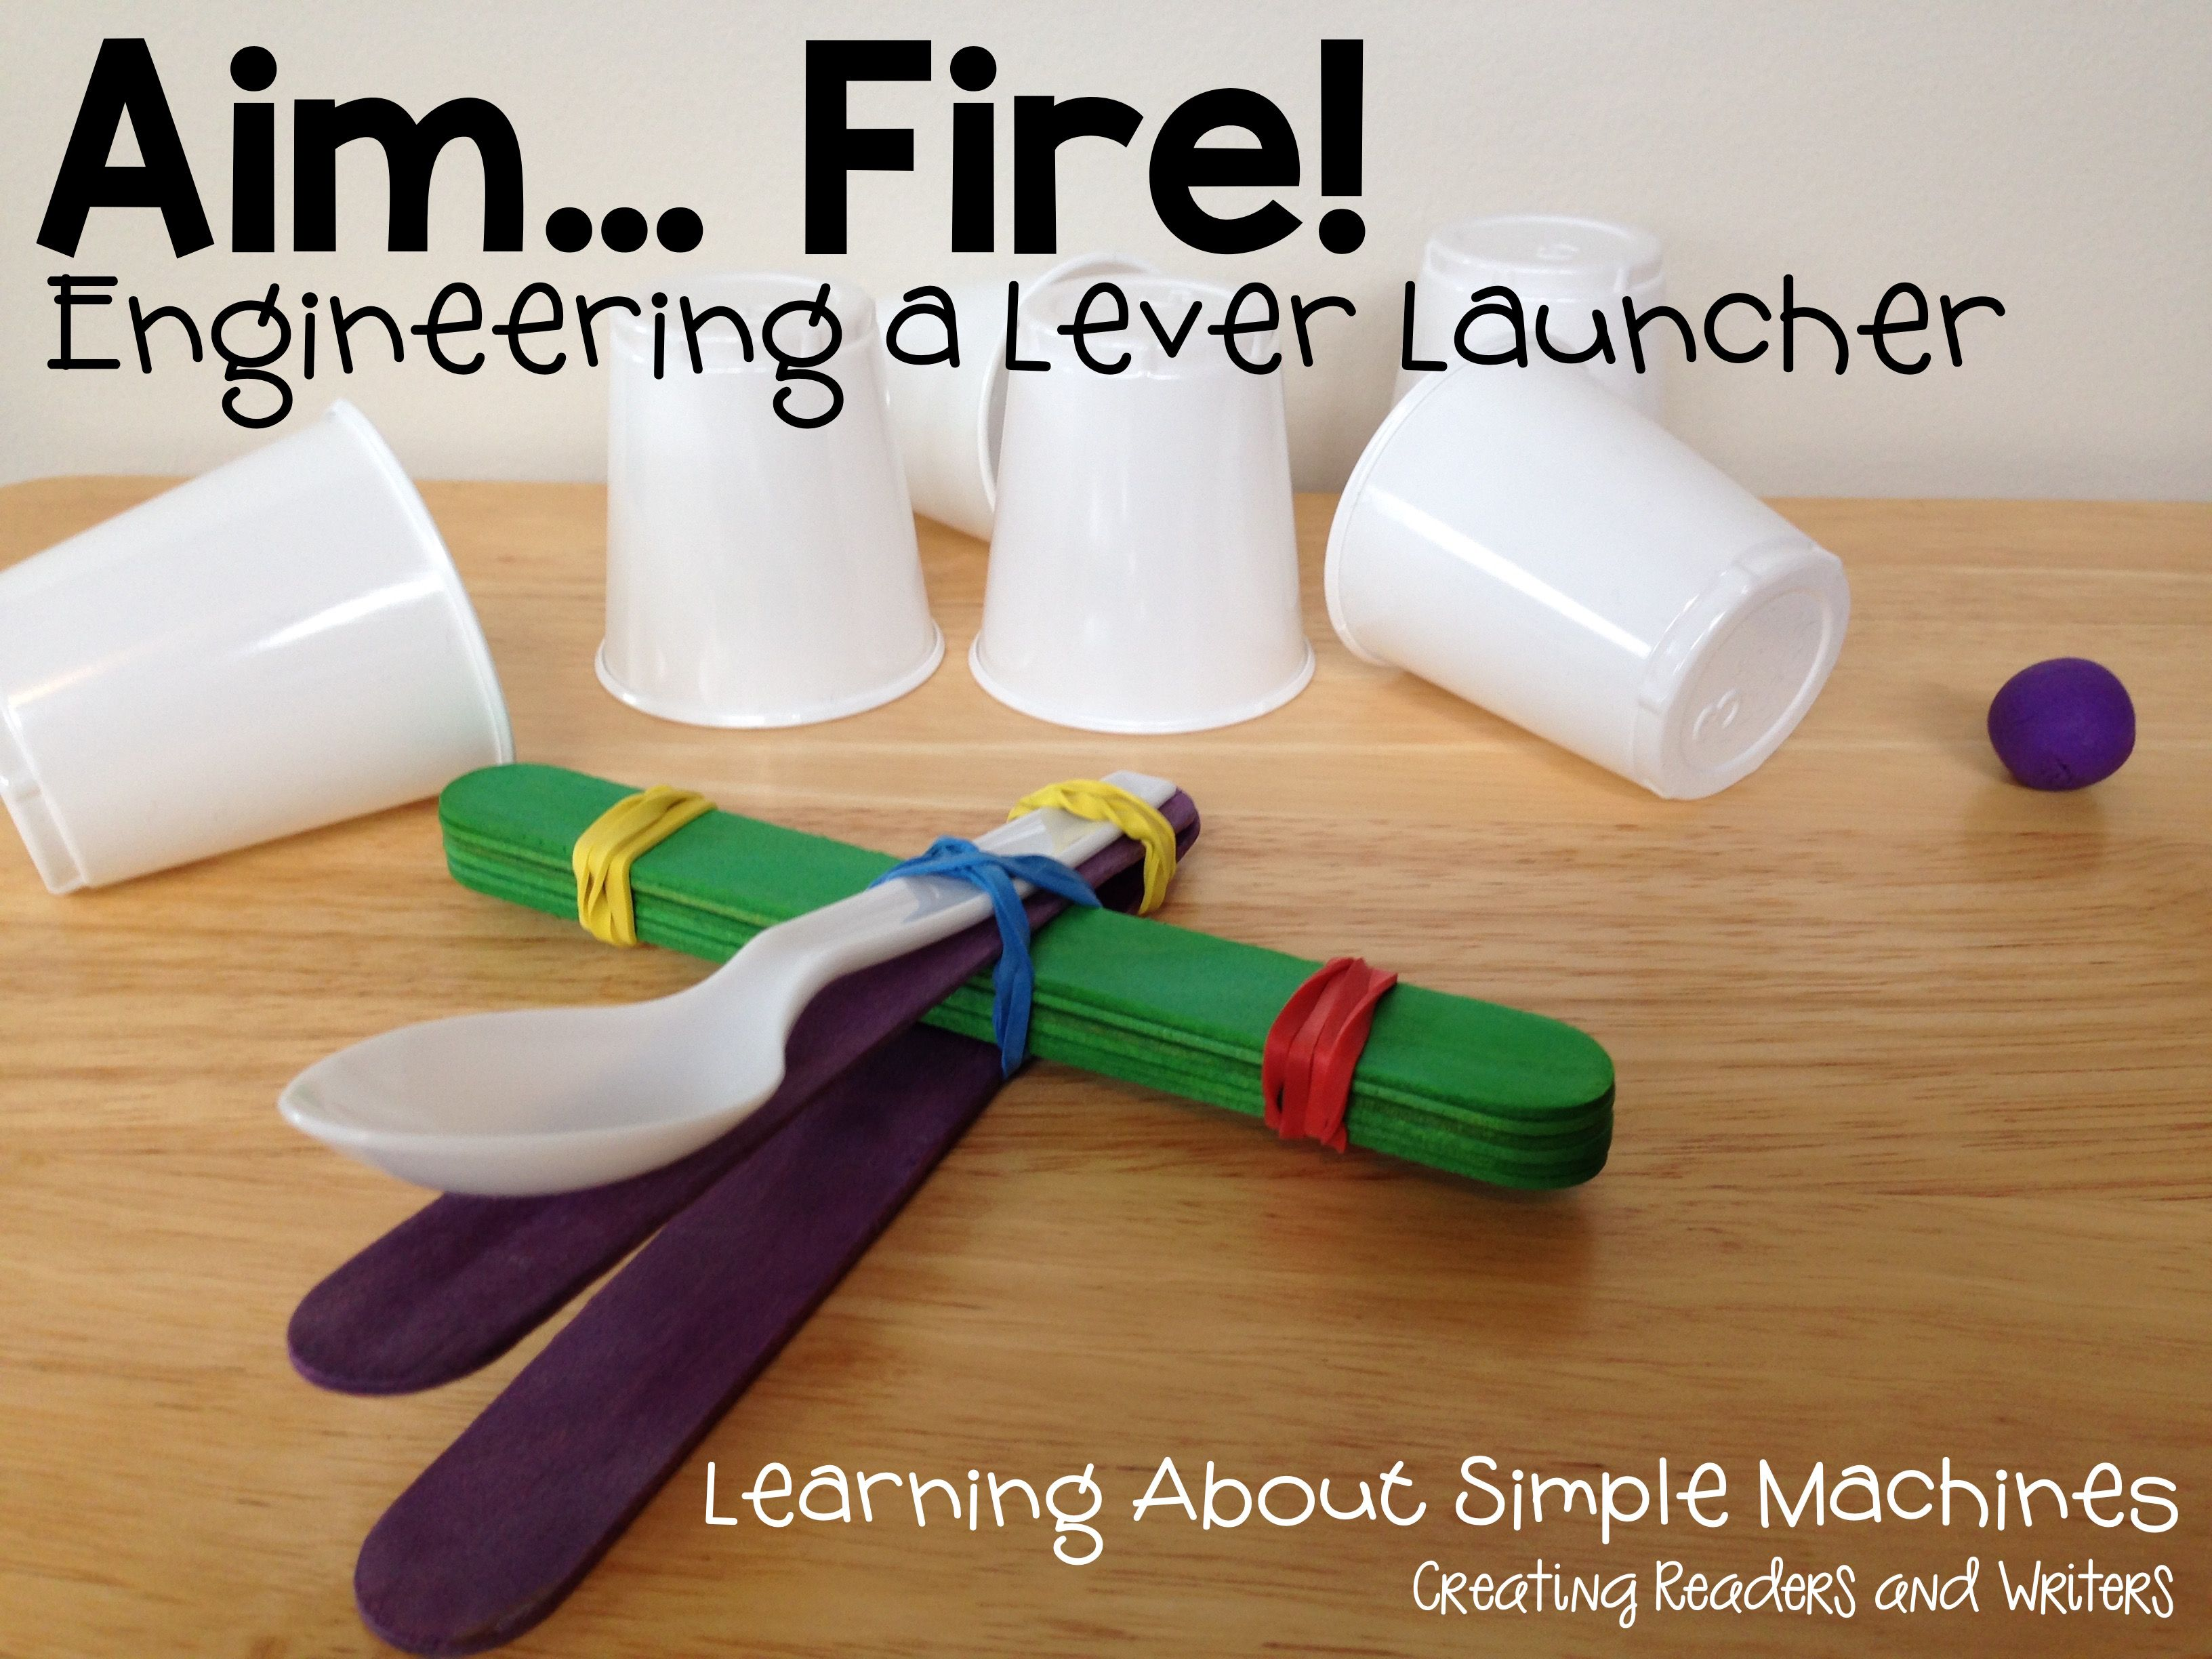 Have Fun Learning About Simple Machines With These Hands